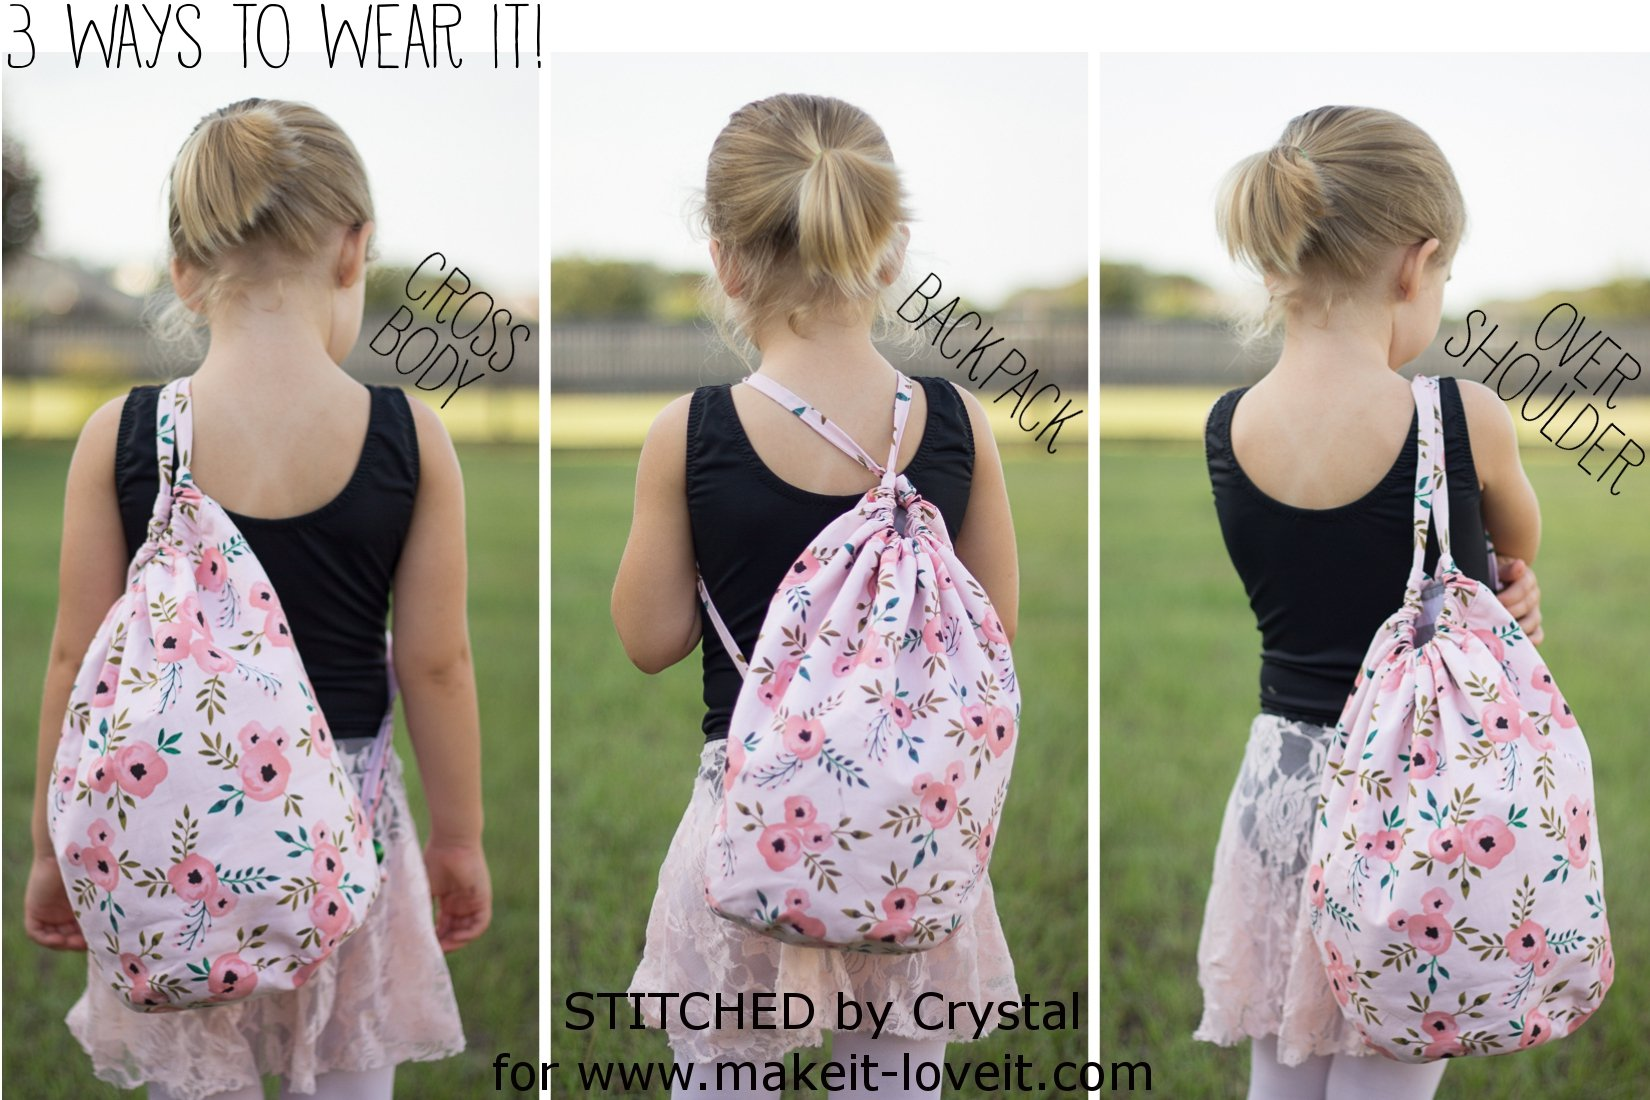 Sew a simple bucket bag